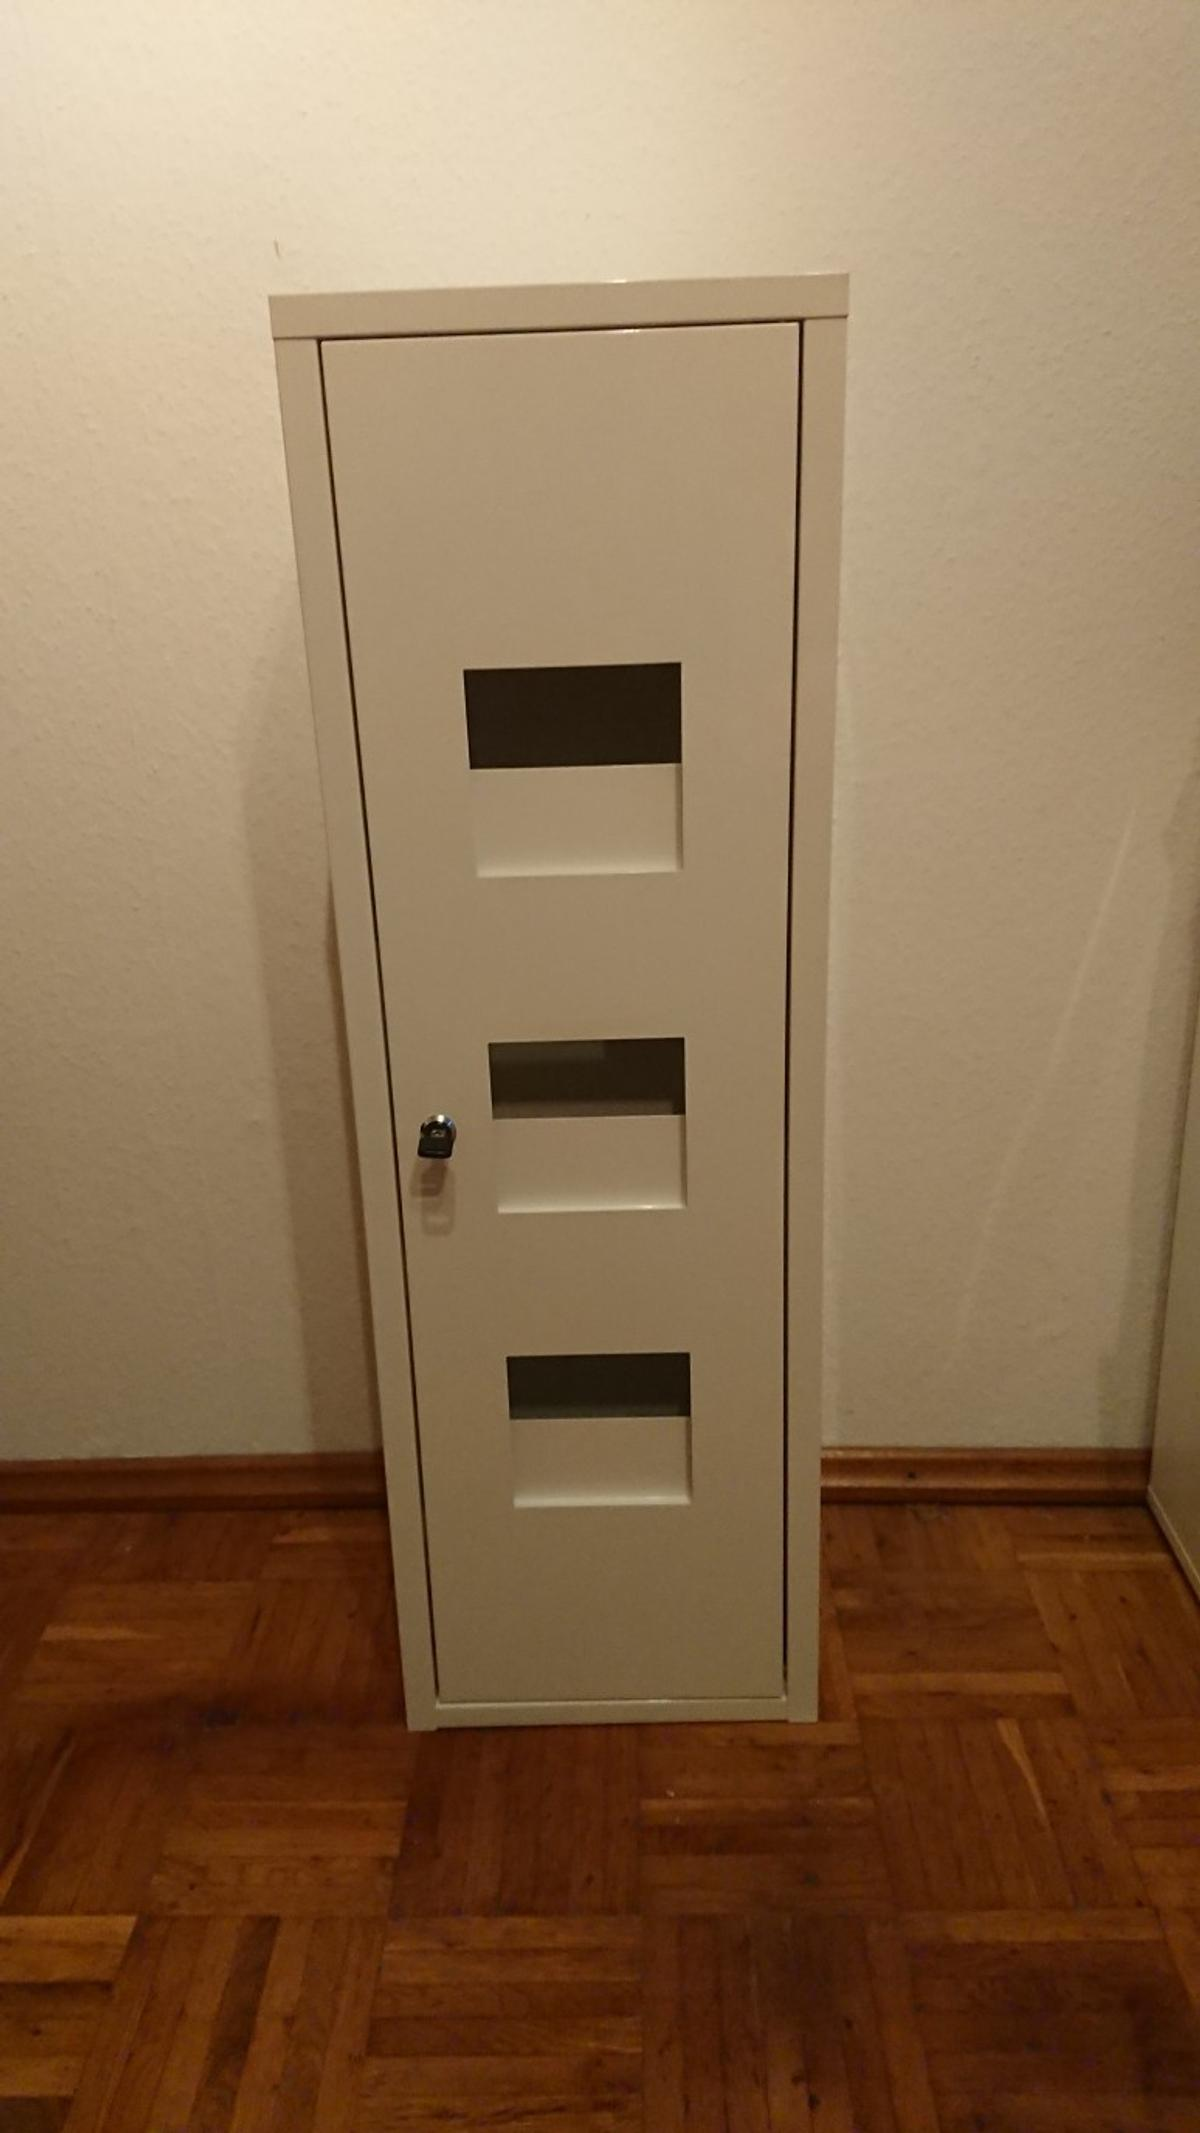 Ikea Ps Cd Dvd Schrank In 76227 Karlsruhe For 30 00 For Sale